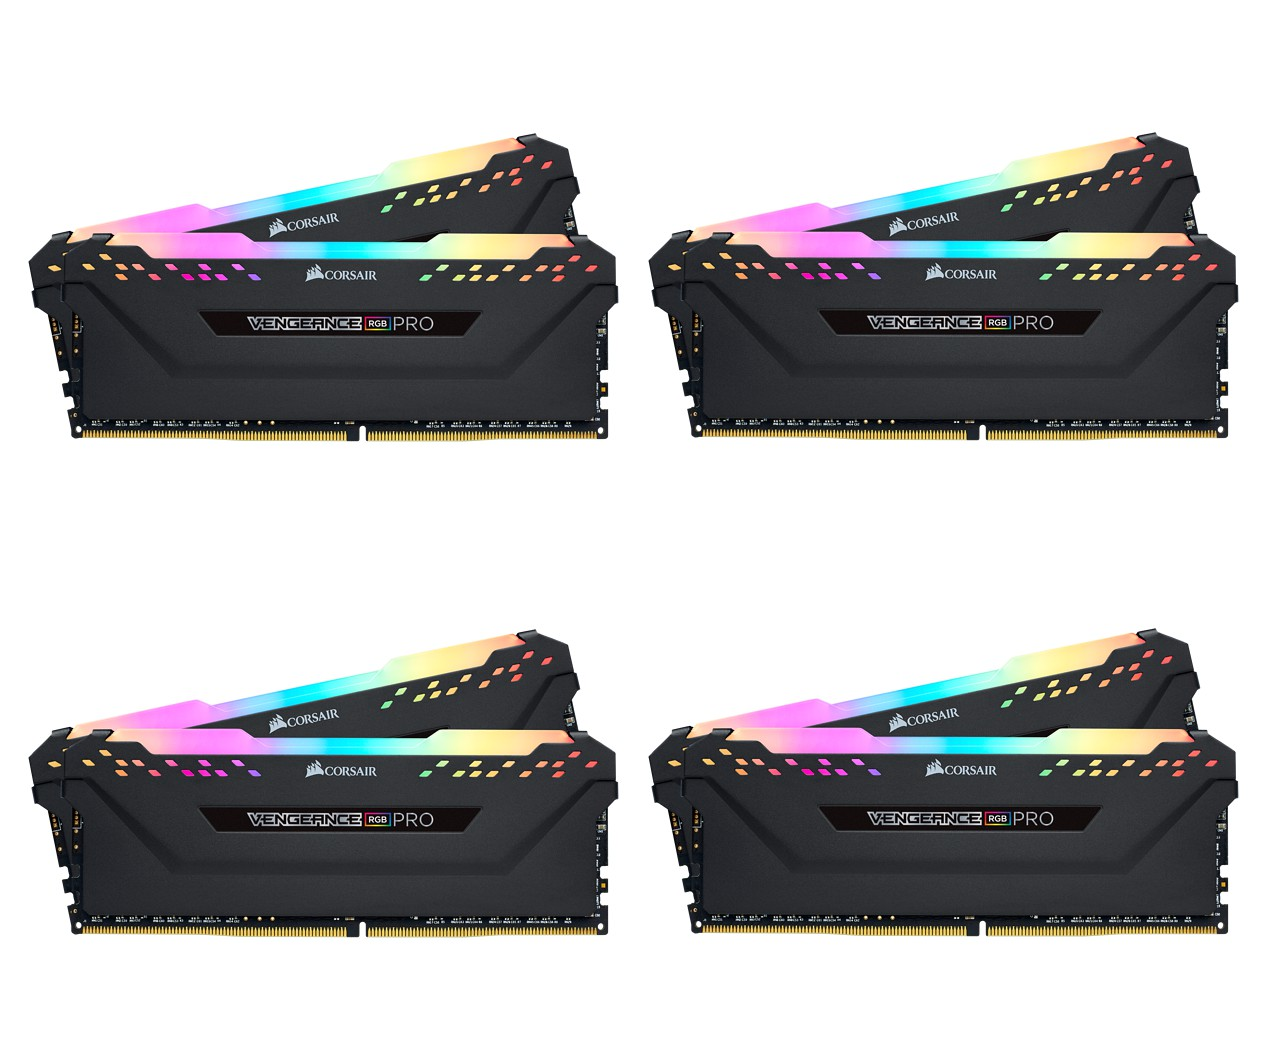 MEMORIA KIT DDR4  64GB(8X8GB) PC4-32000 4000MHZ CORSAIR VENGEANCE RGB PRO C19